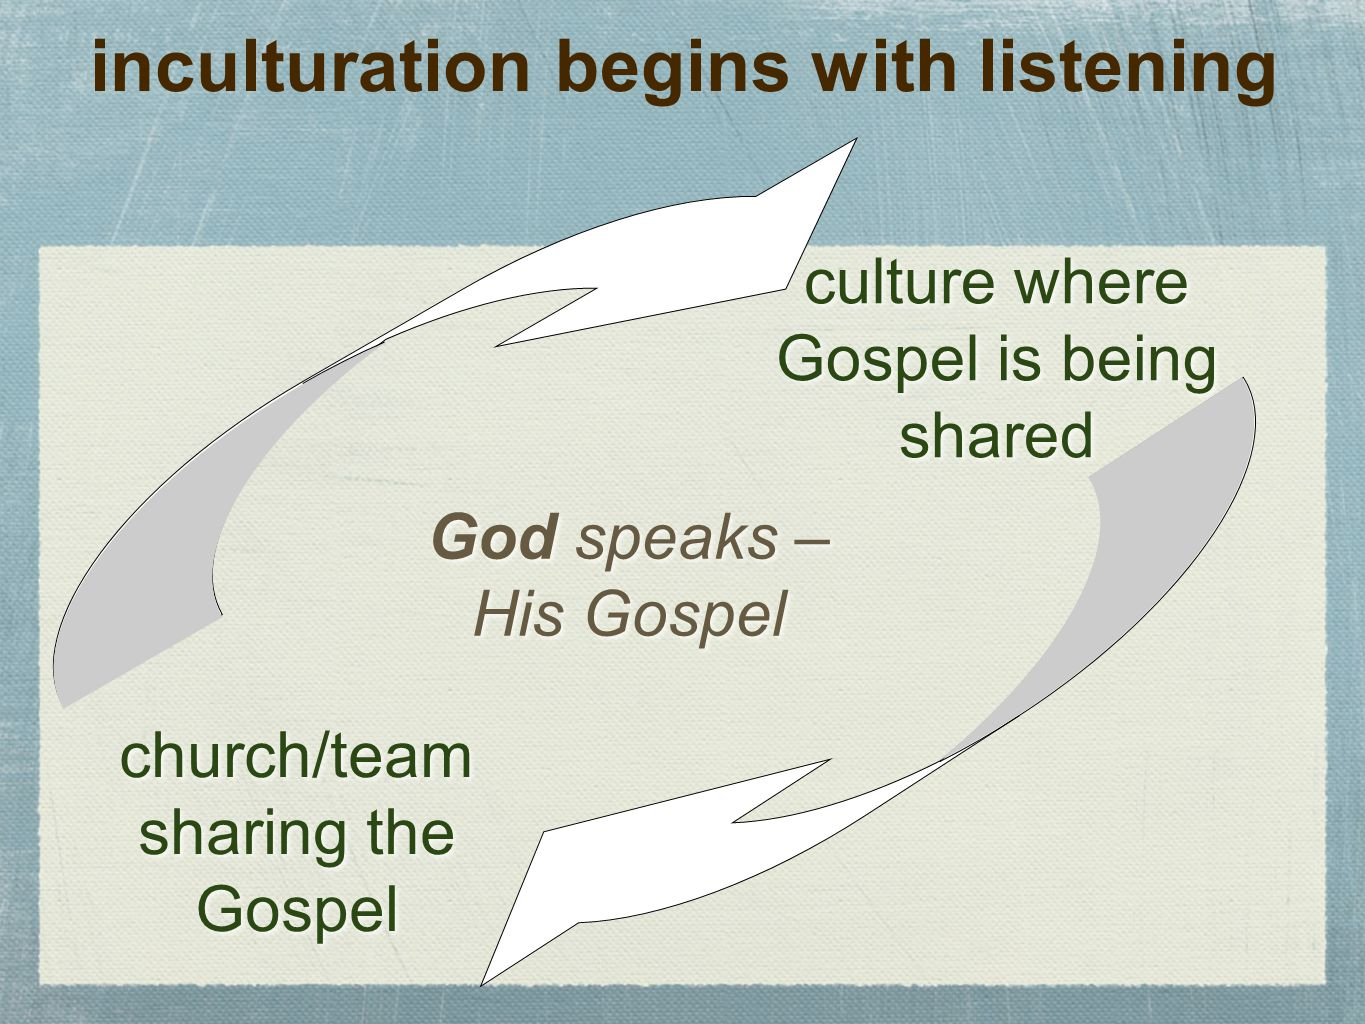 inculturation begins with listening